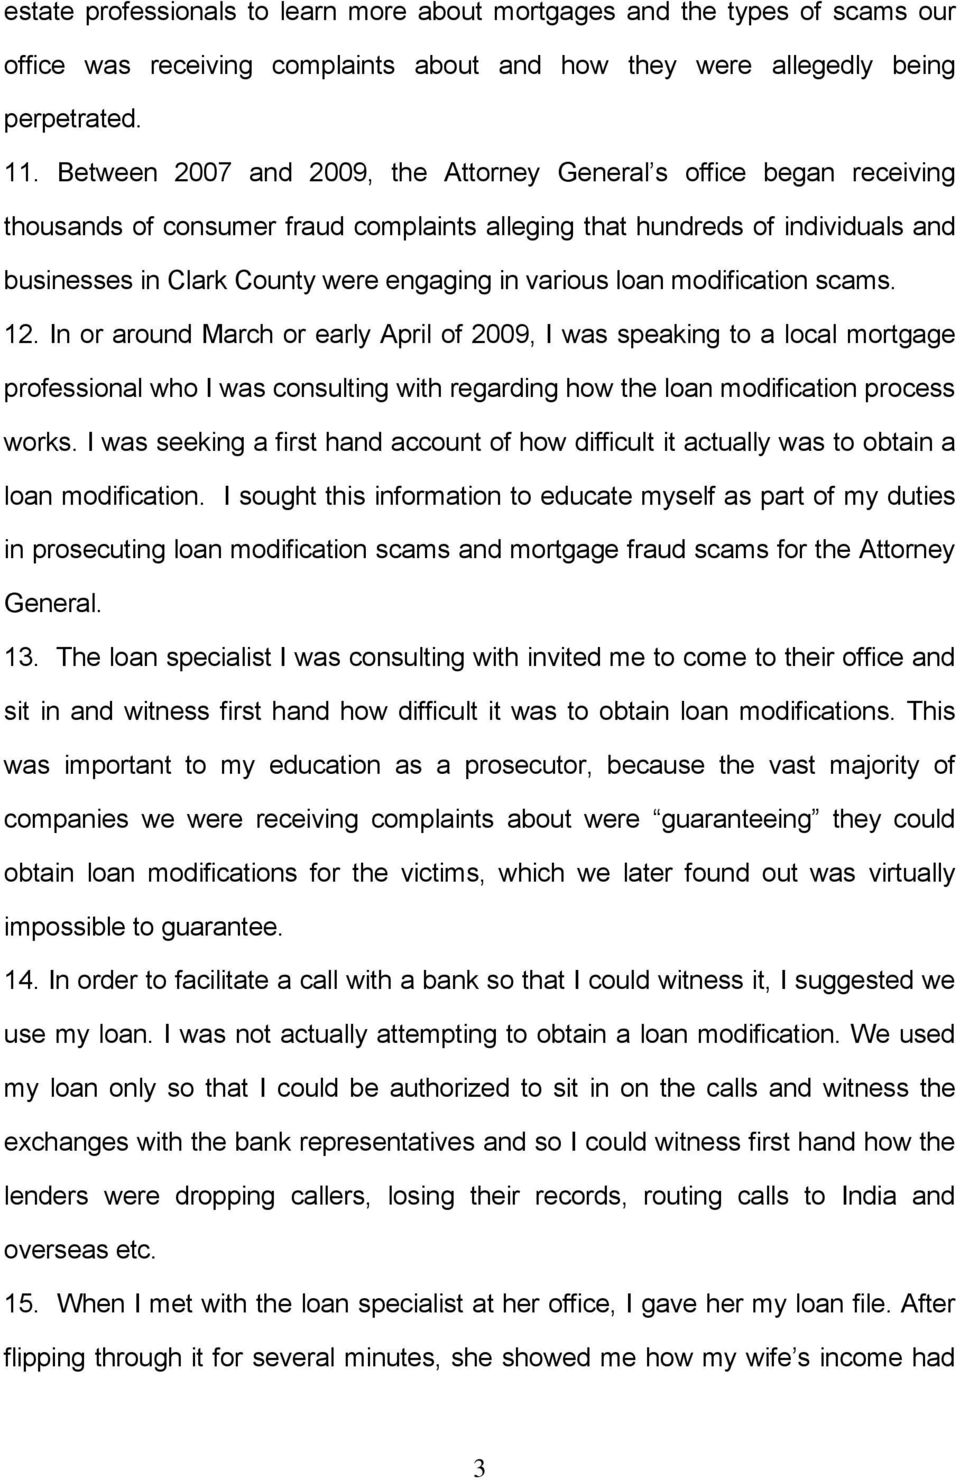 various loan modification scams. 12.